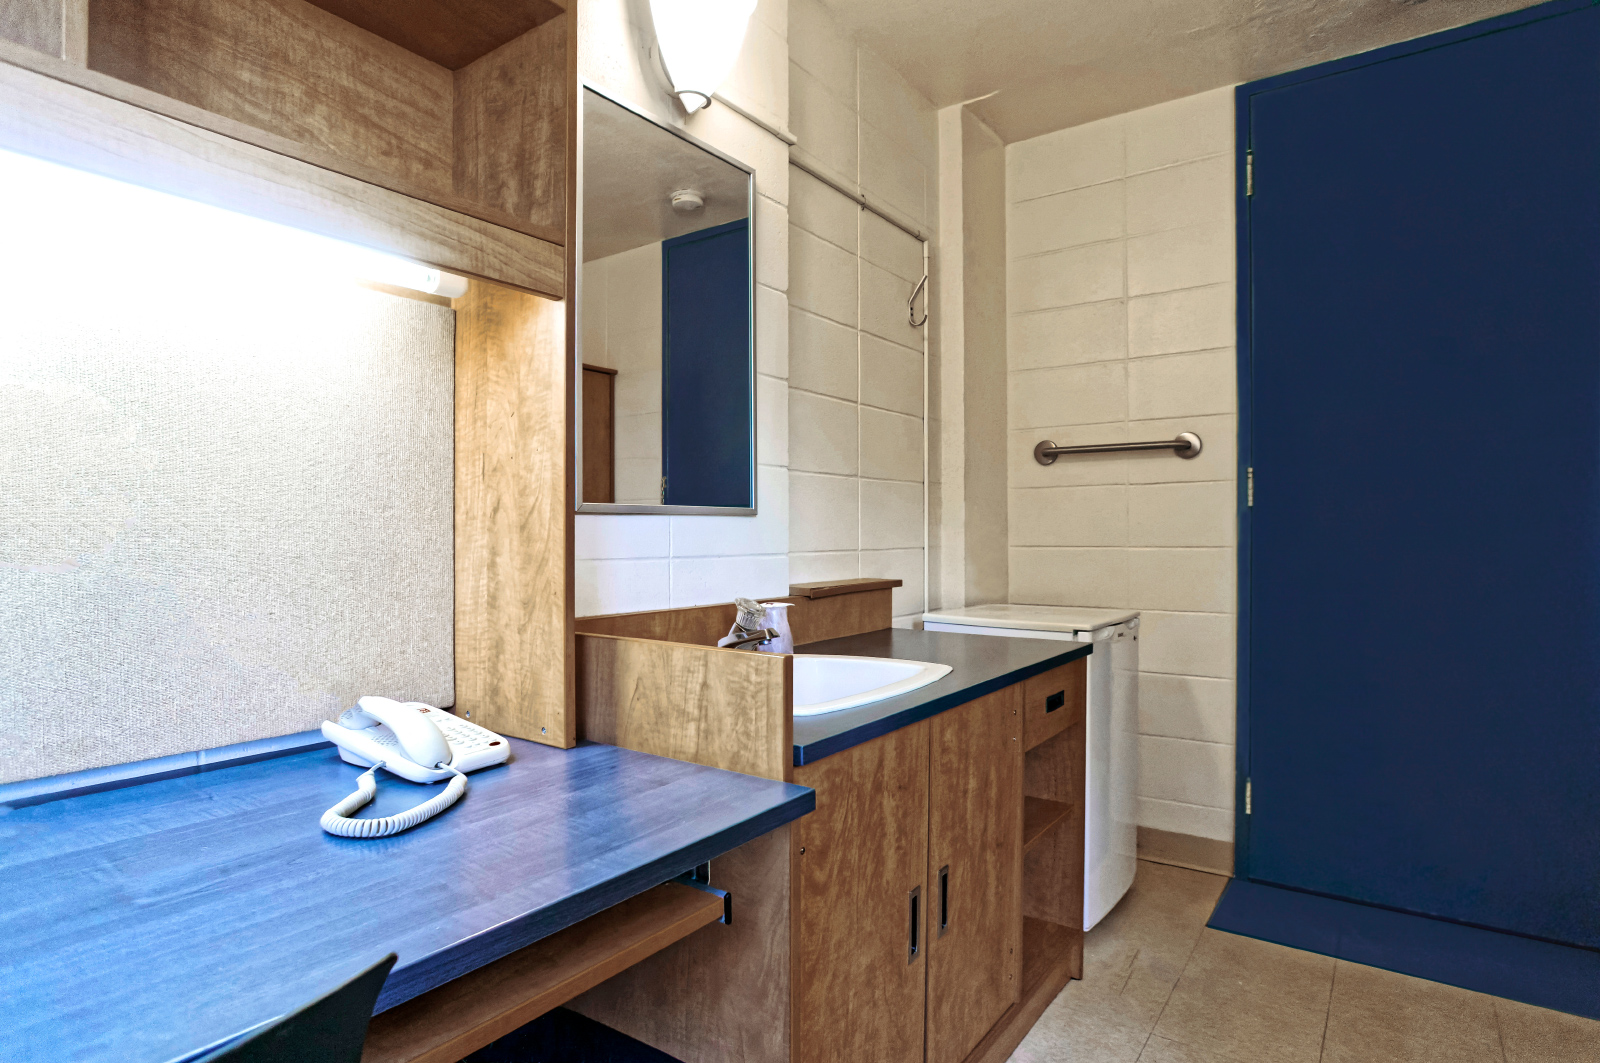 100 chambre louer montreal semaine hotel montreal for Chambre a louer a barcelone pas cher